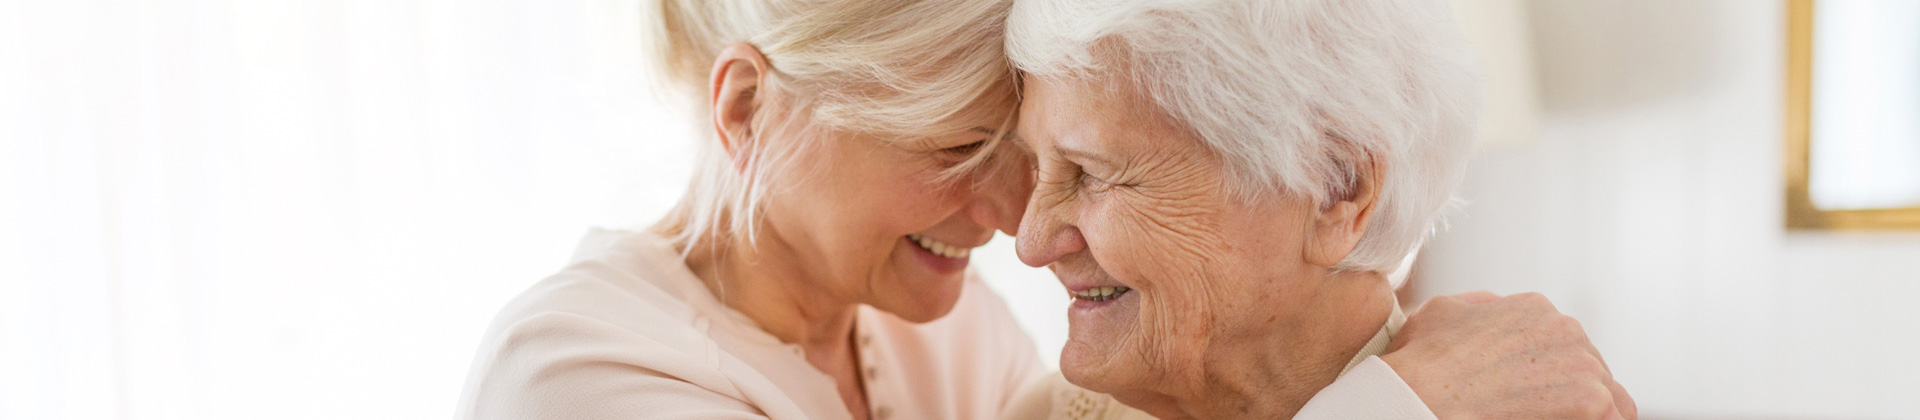 a senior woman and her adult daughter embracing one another